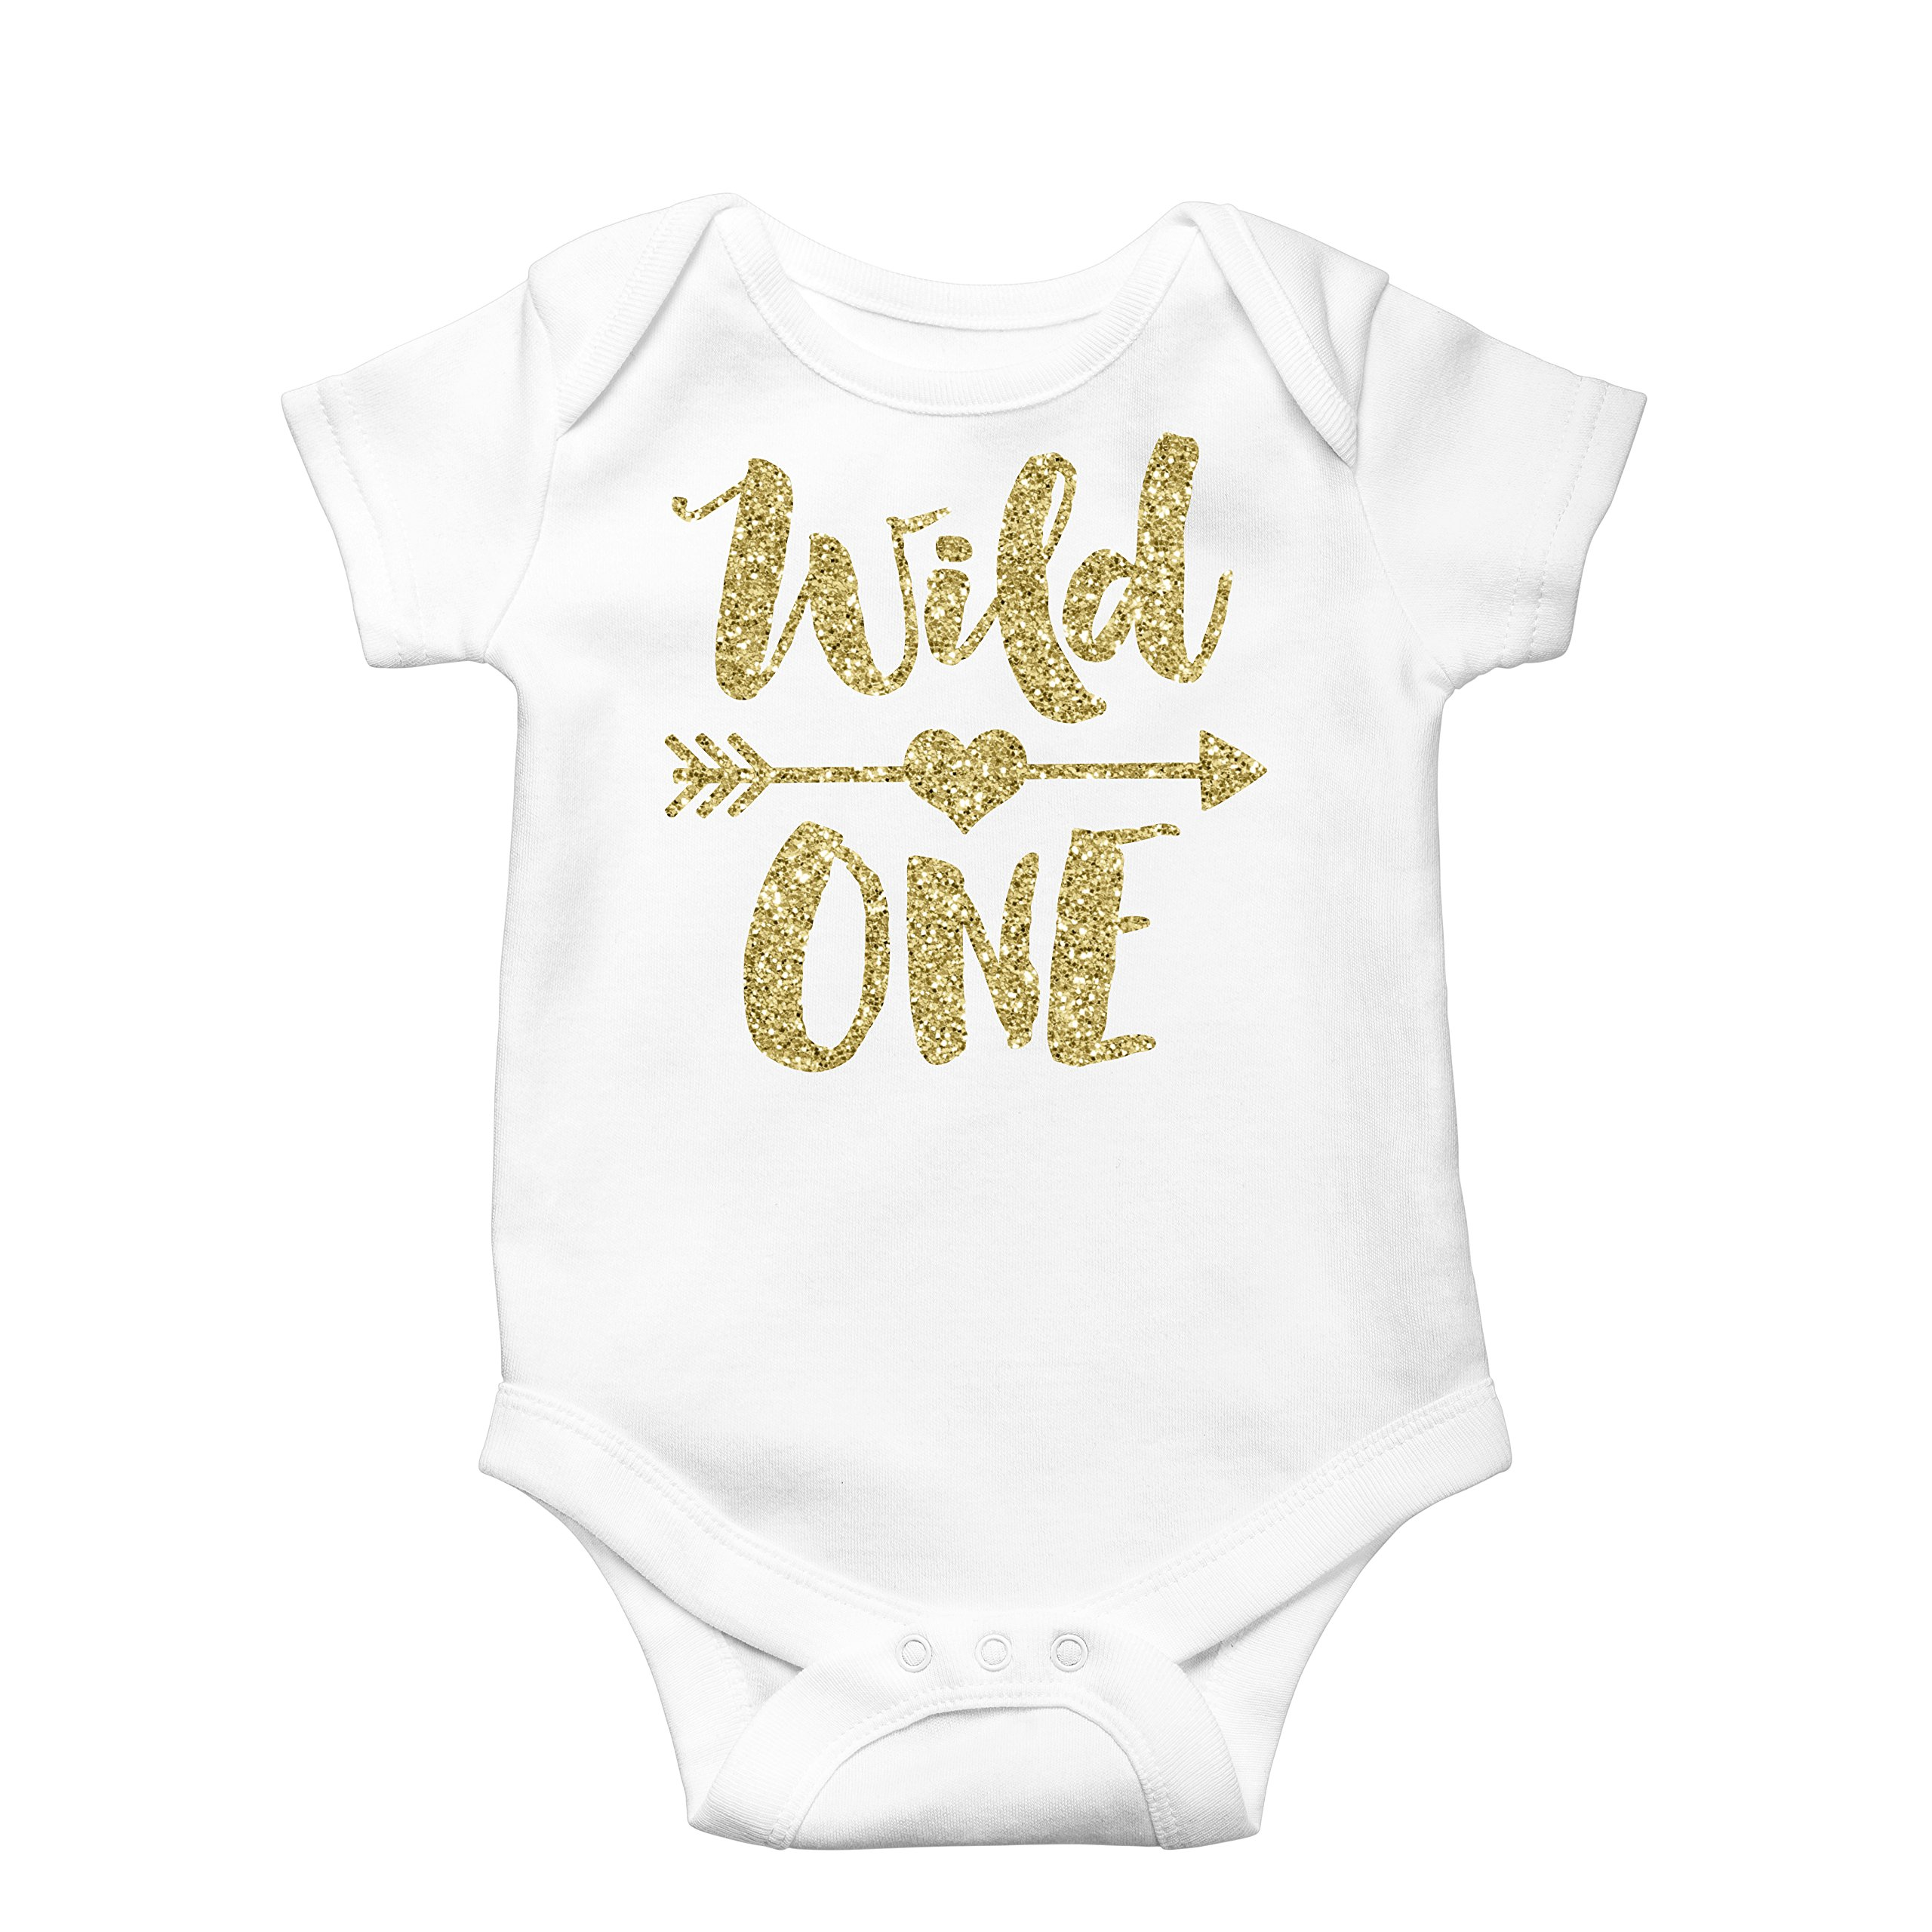 Olive Loves Apple Wild One Gold Glitter Girls 1st Birthday Bodysuit,Gold,6-12 months short sleeve